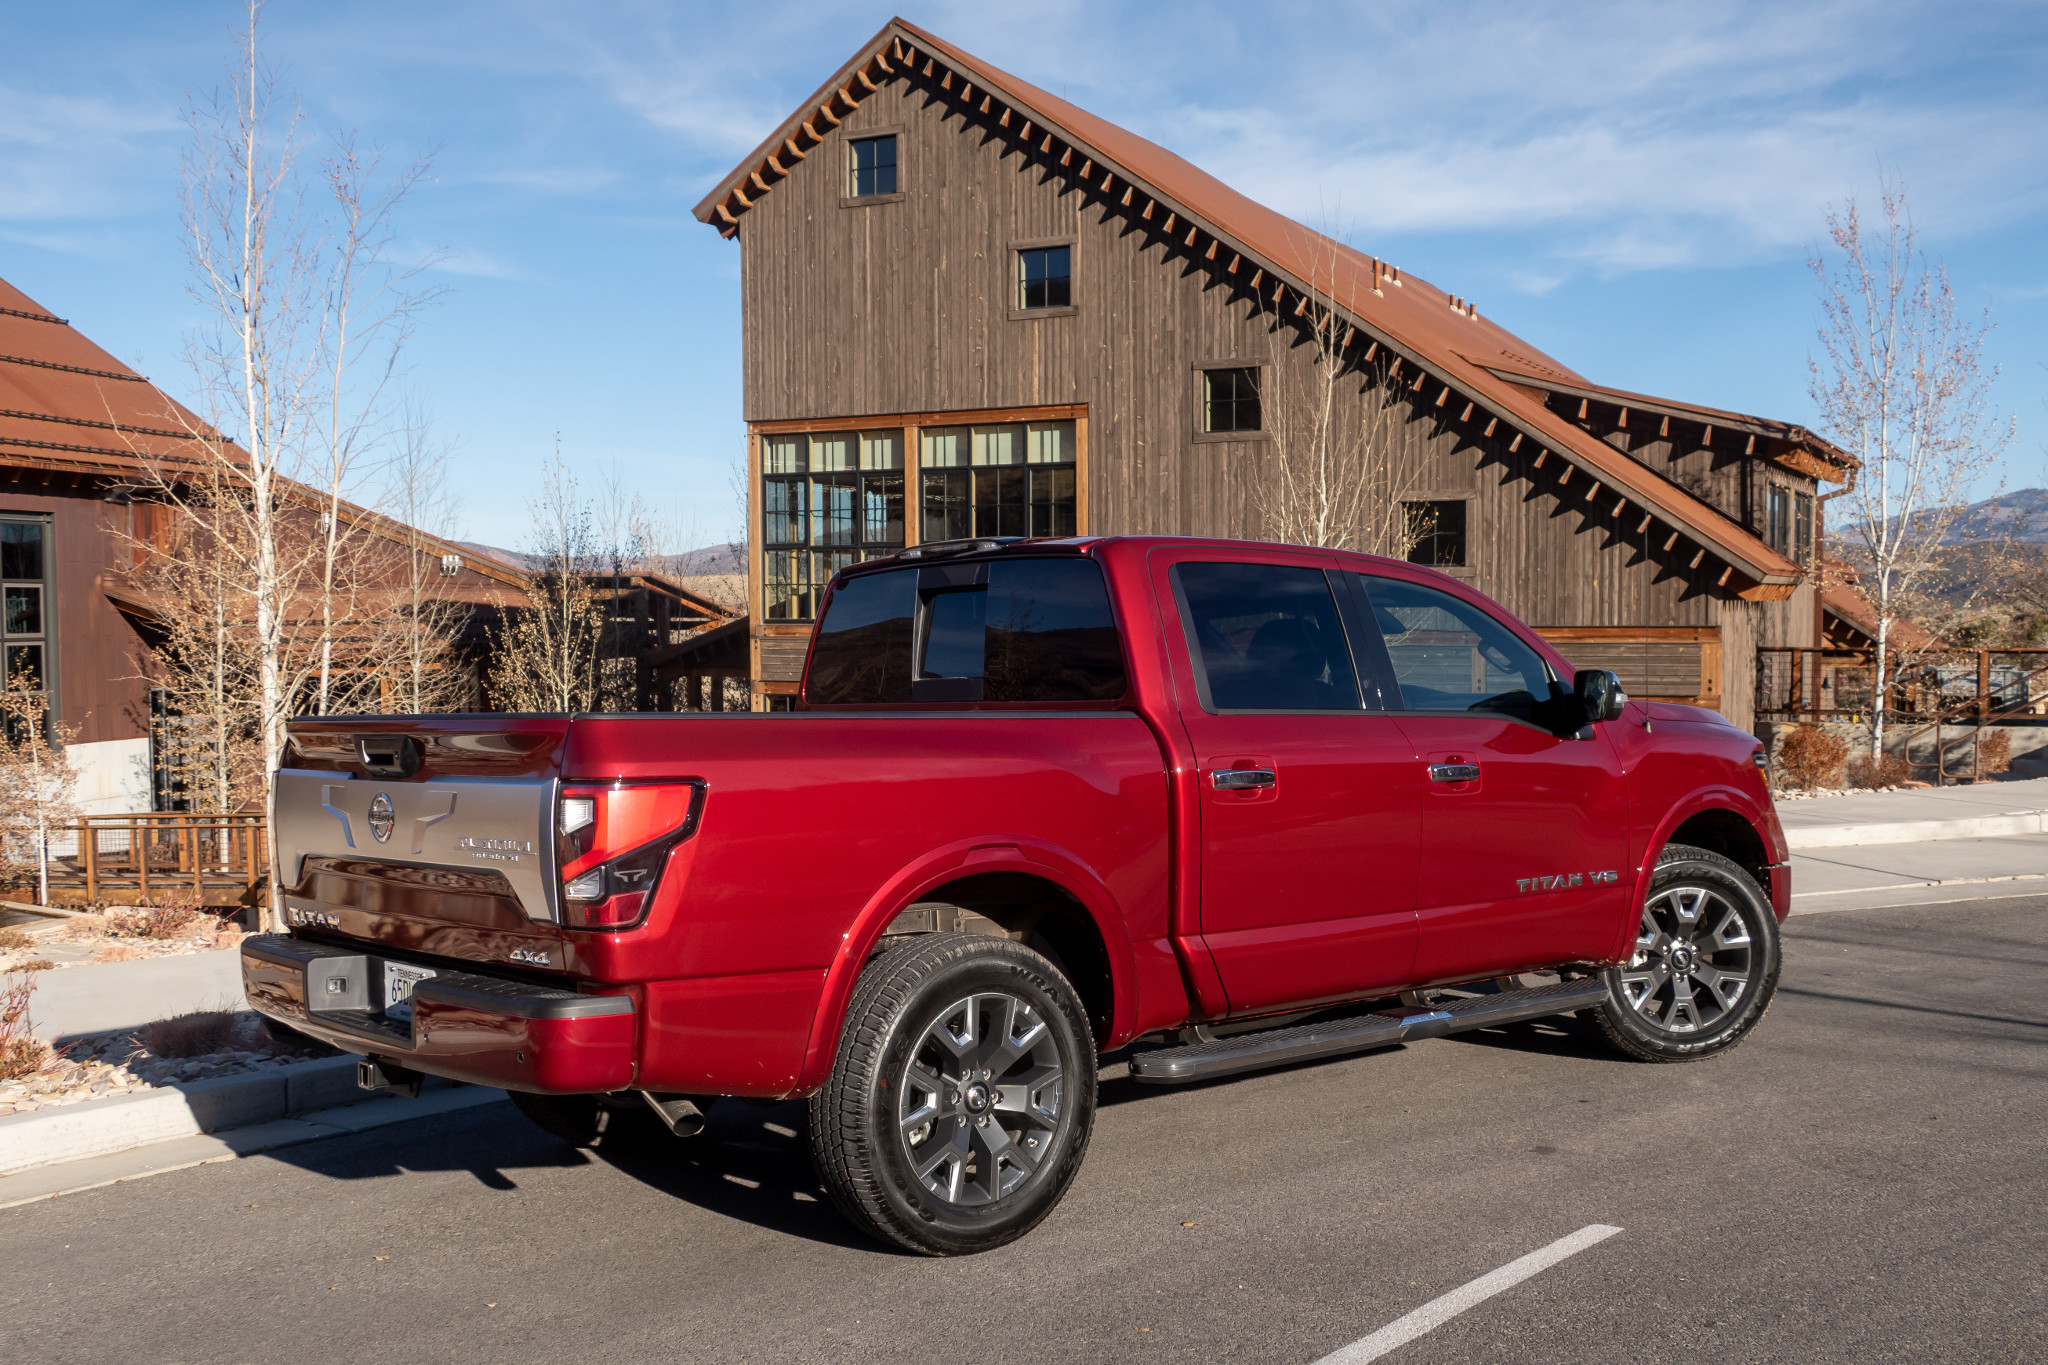 All the Pickup Truck News: Nissan Titan Review, Jacked Jeep Gladiator, Tesla Truck and More